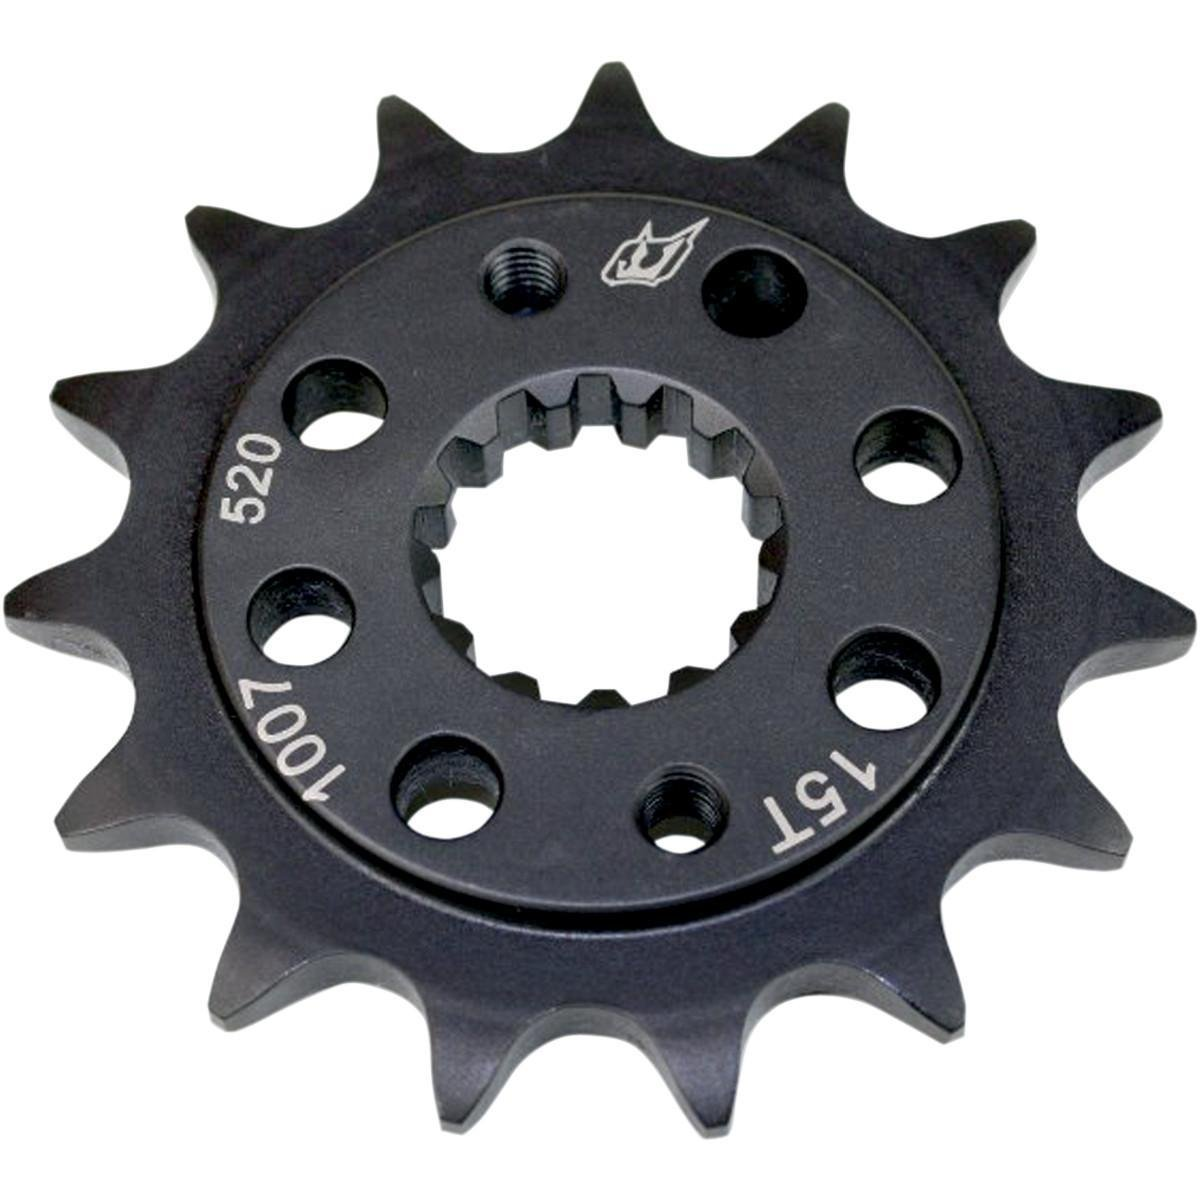 Driven Racing 15-18 KTM RC390 Front Sprocket 520//14 Tooth